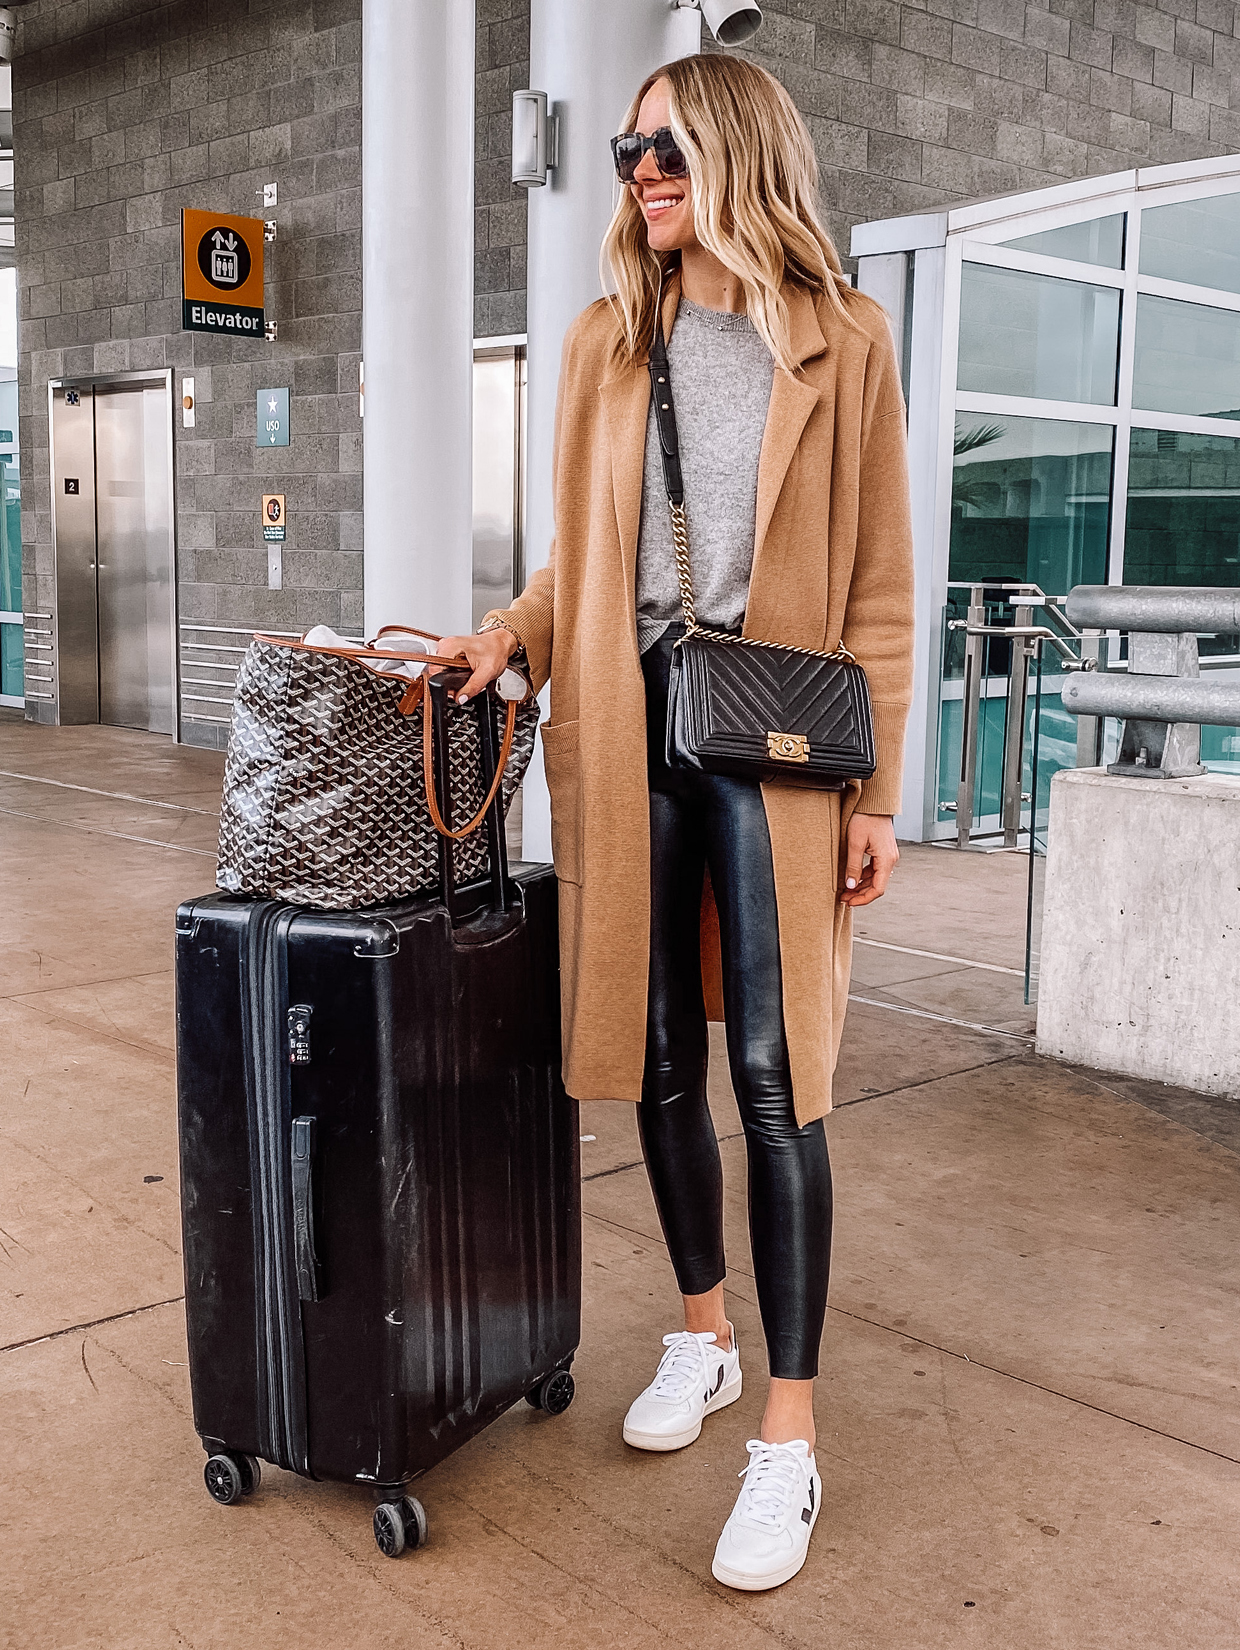 my 10 favorite airport outfits to inspire your 2020 travel